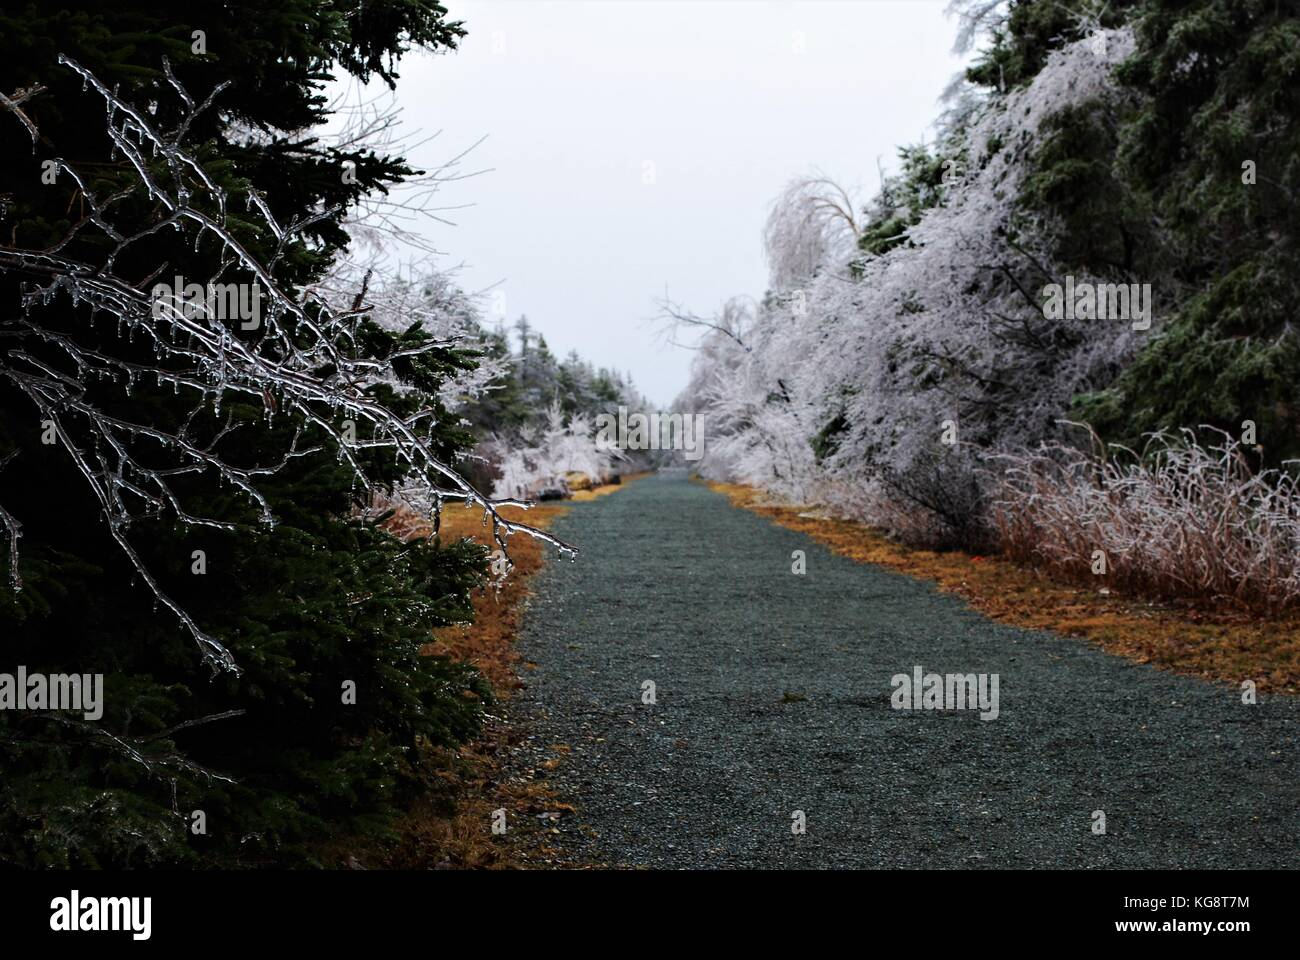 Ice covered trees line the sides of a walking trail, Conception Bay South, Newfoundland Labrador, Canada. - Stock Image